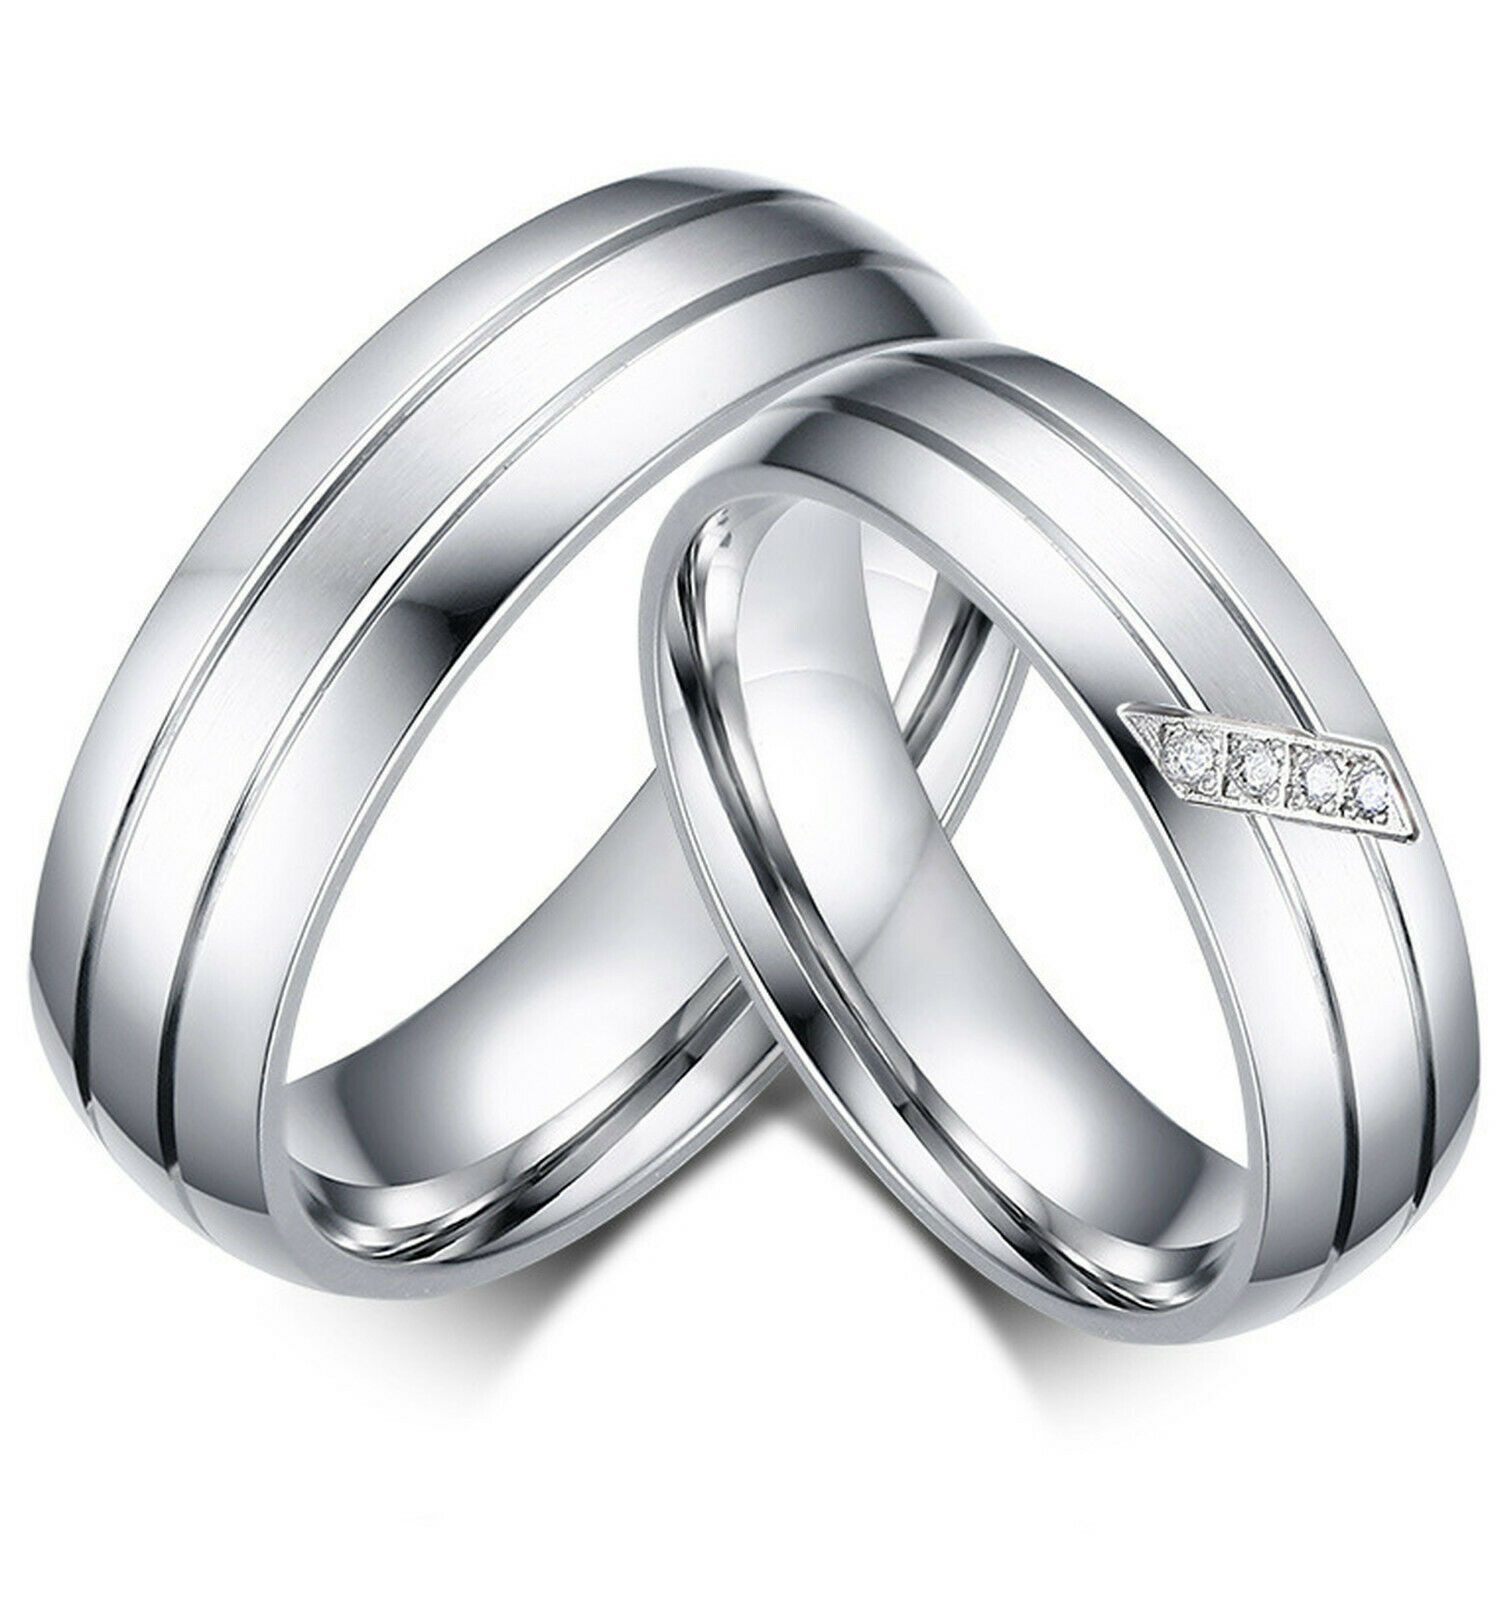 Couple's Matching Ring, His or Hers Stainless Steel Comfort Fit Wedding Band Fashion Jewelry